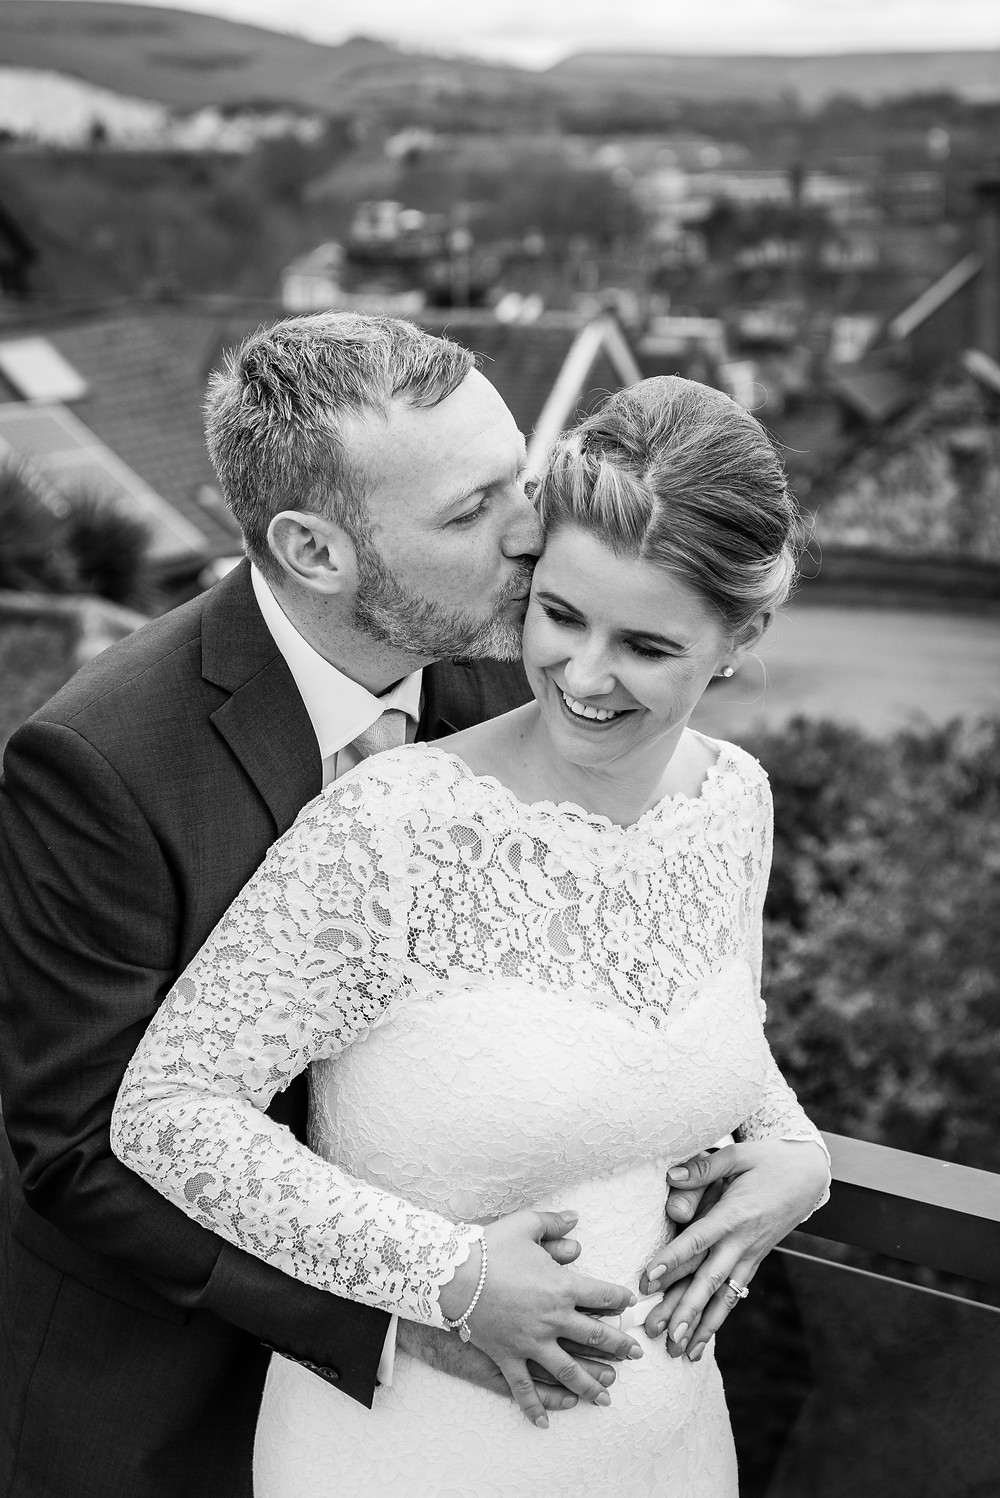 bride and groom embrace, black and white weddinh photograph